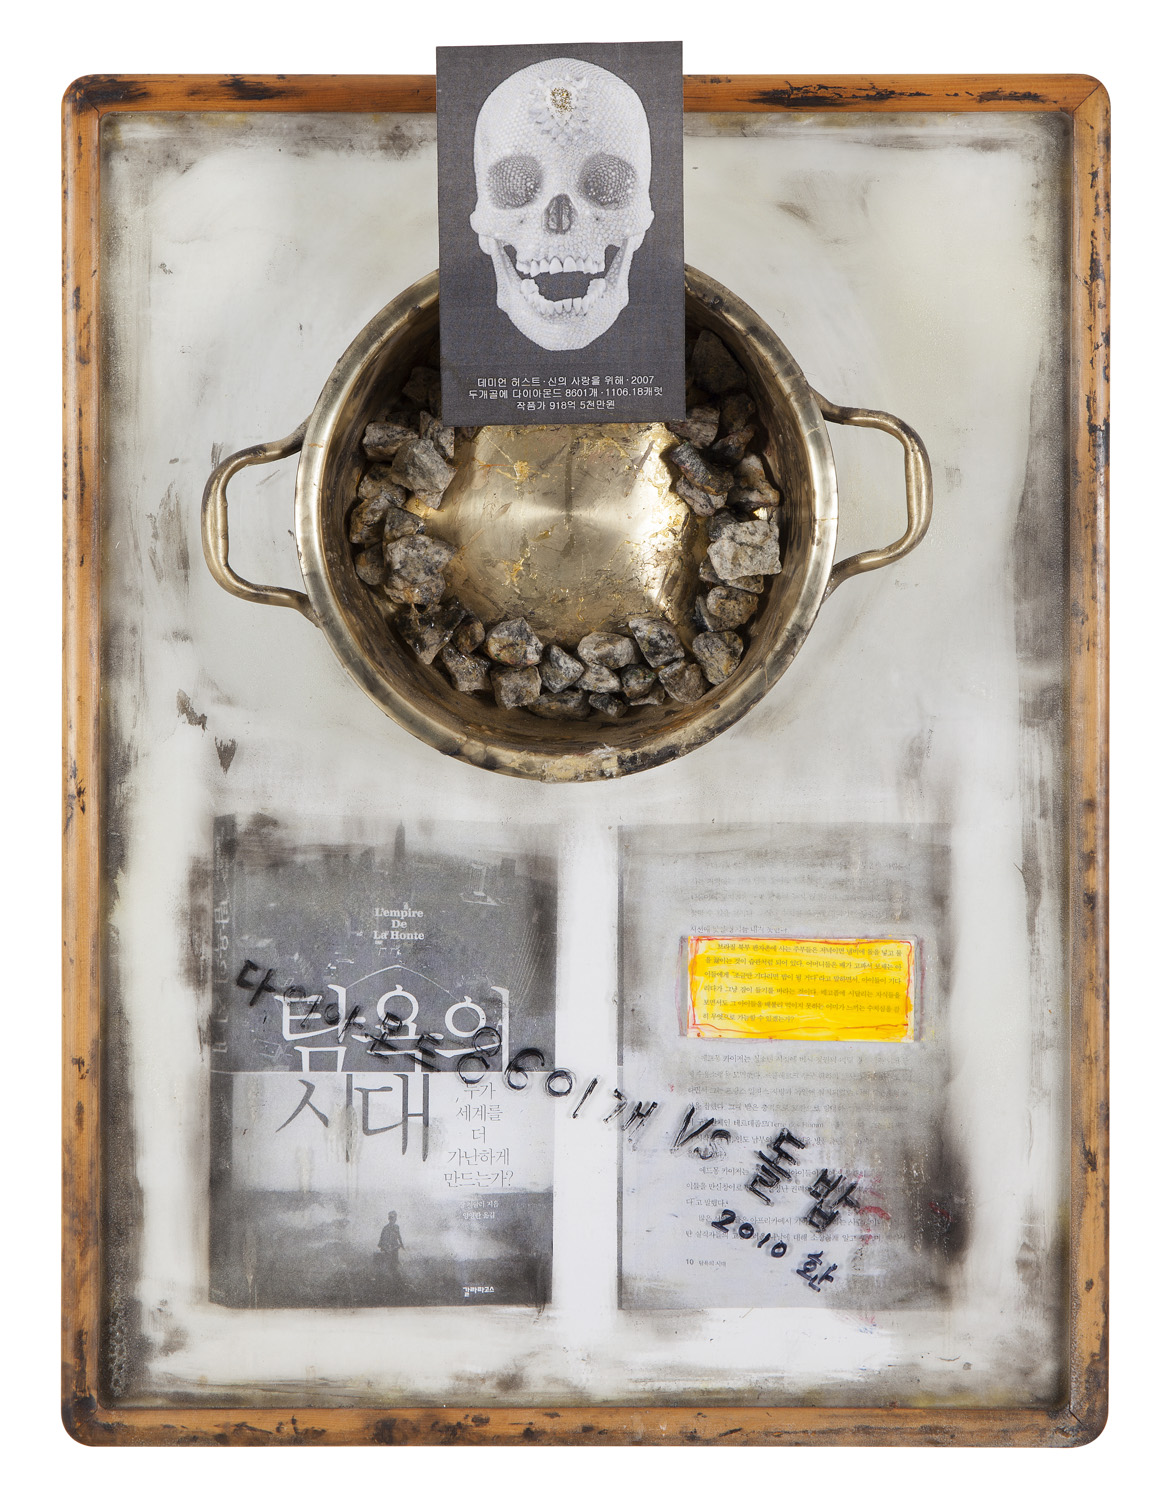 8,601 Diamonds versus Stone Rice, 2010, A pot, stone, photograph copy on canvas, 70.8x53.7x11cm